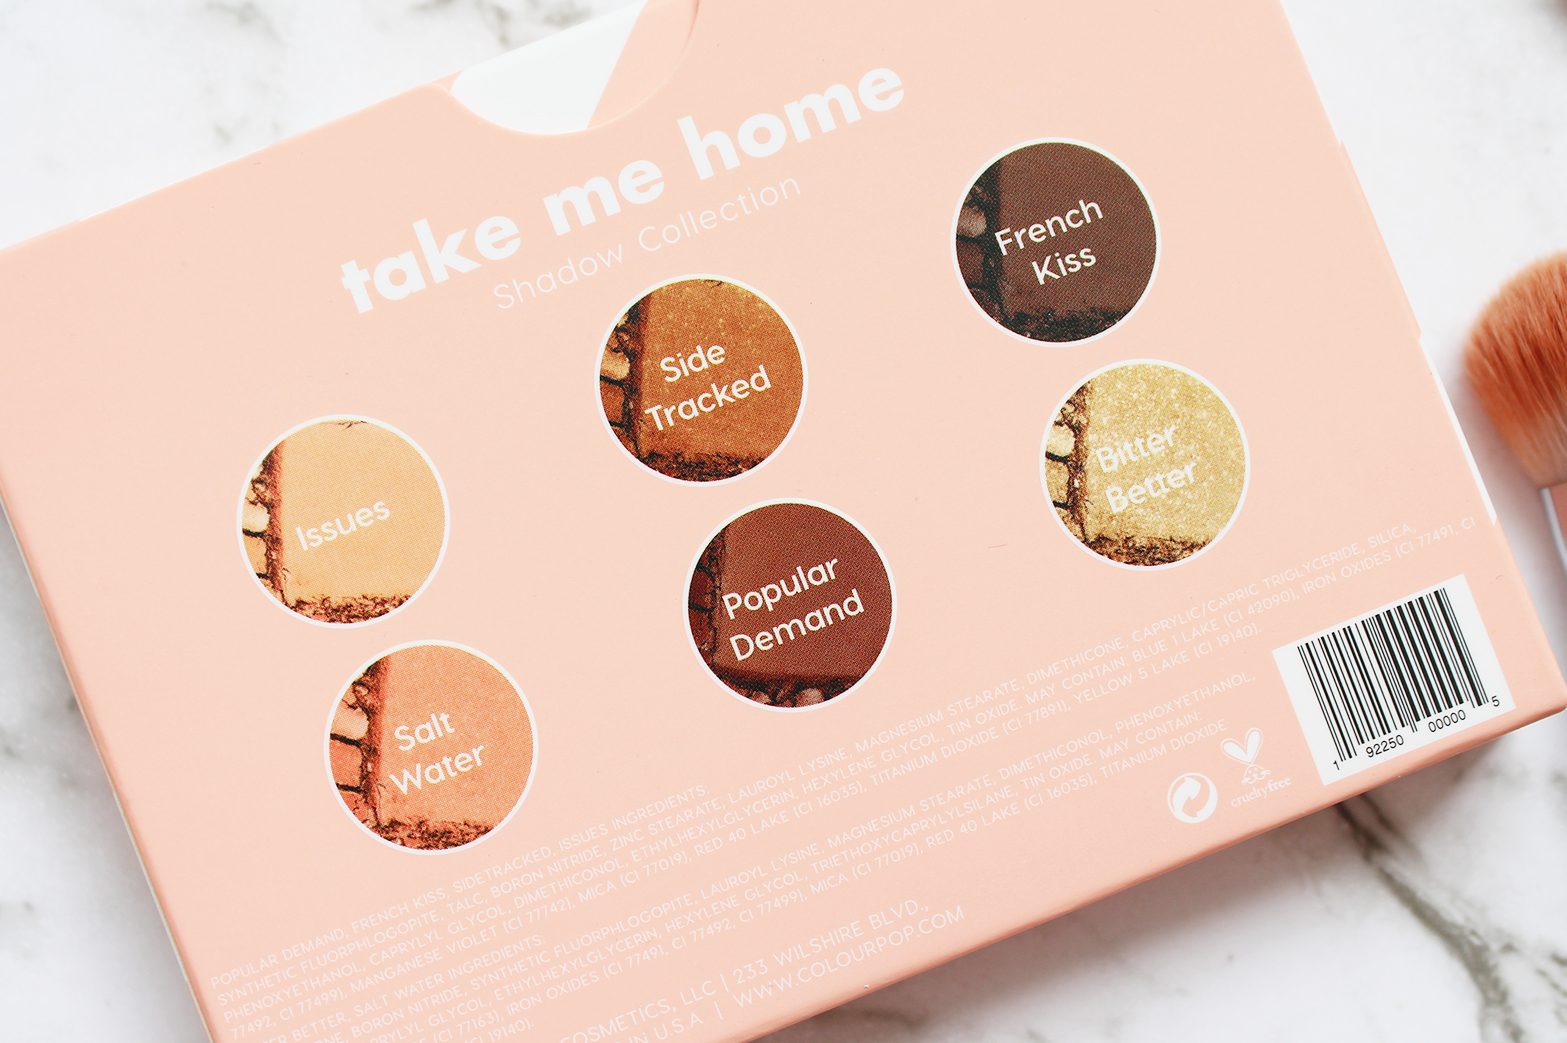 COLOURPOP | Take Me Home Mini Shadow Palette - Review + Swatches - CassandraMyee